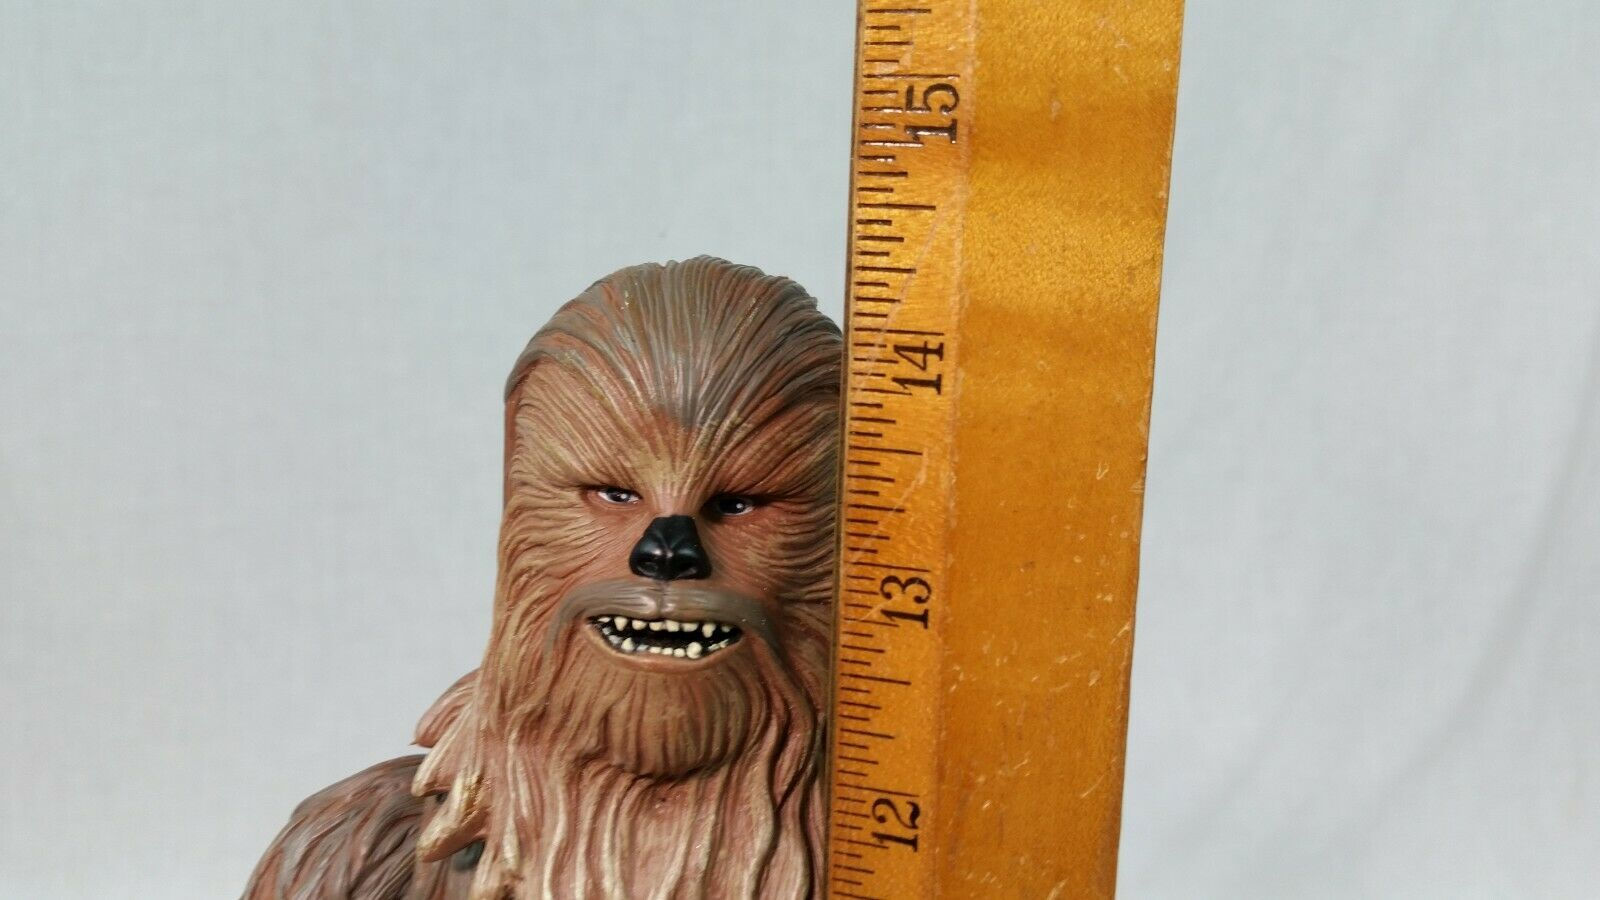 STAR WARS Chewbacca Action Figure, 14 Inch Tall - 2004 LFL Hasbro image 8